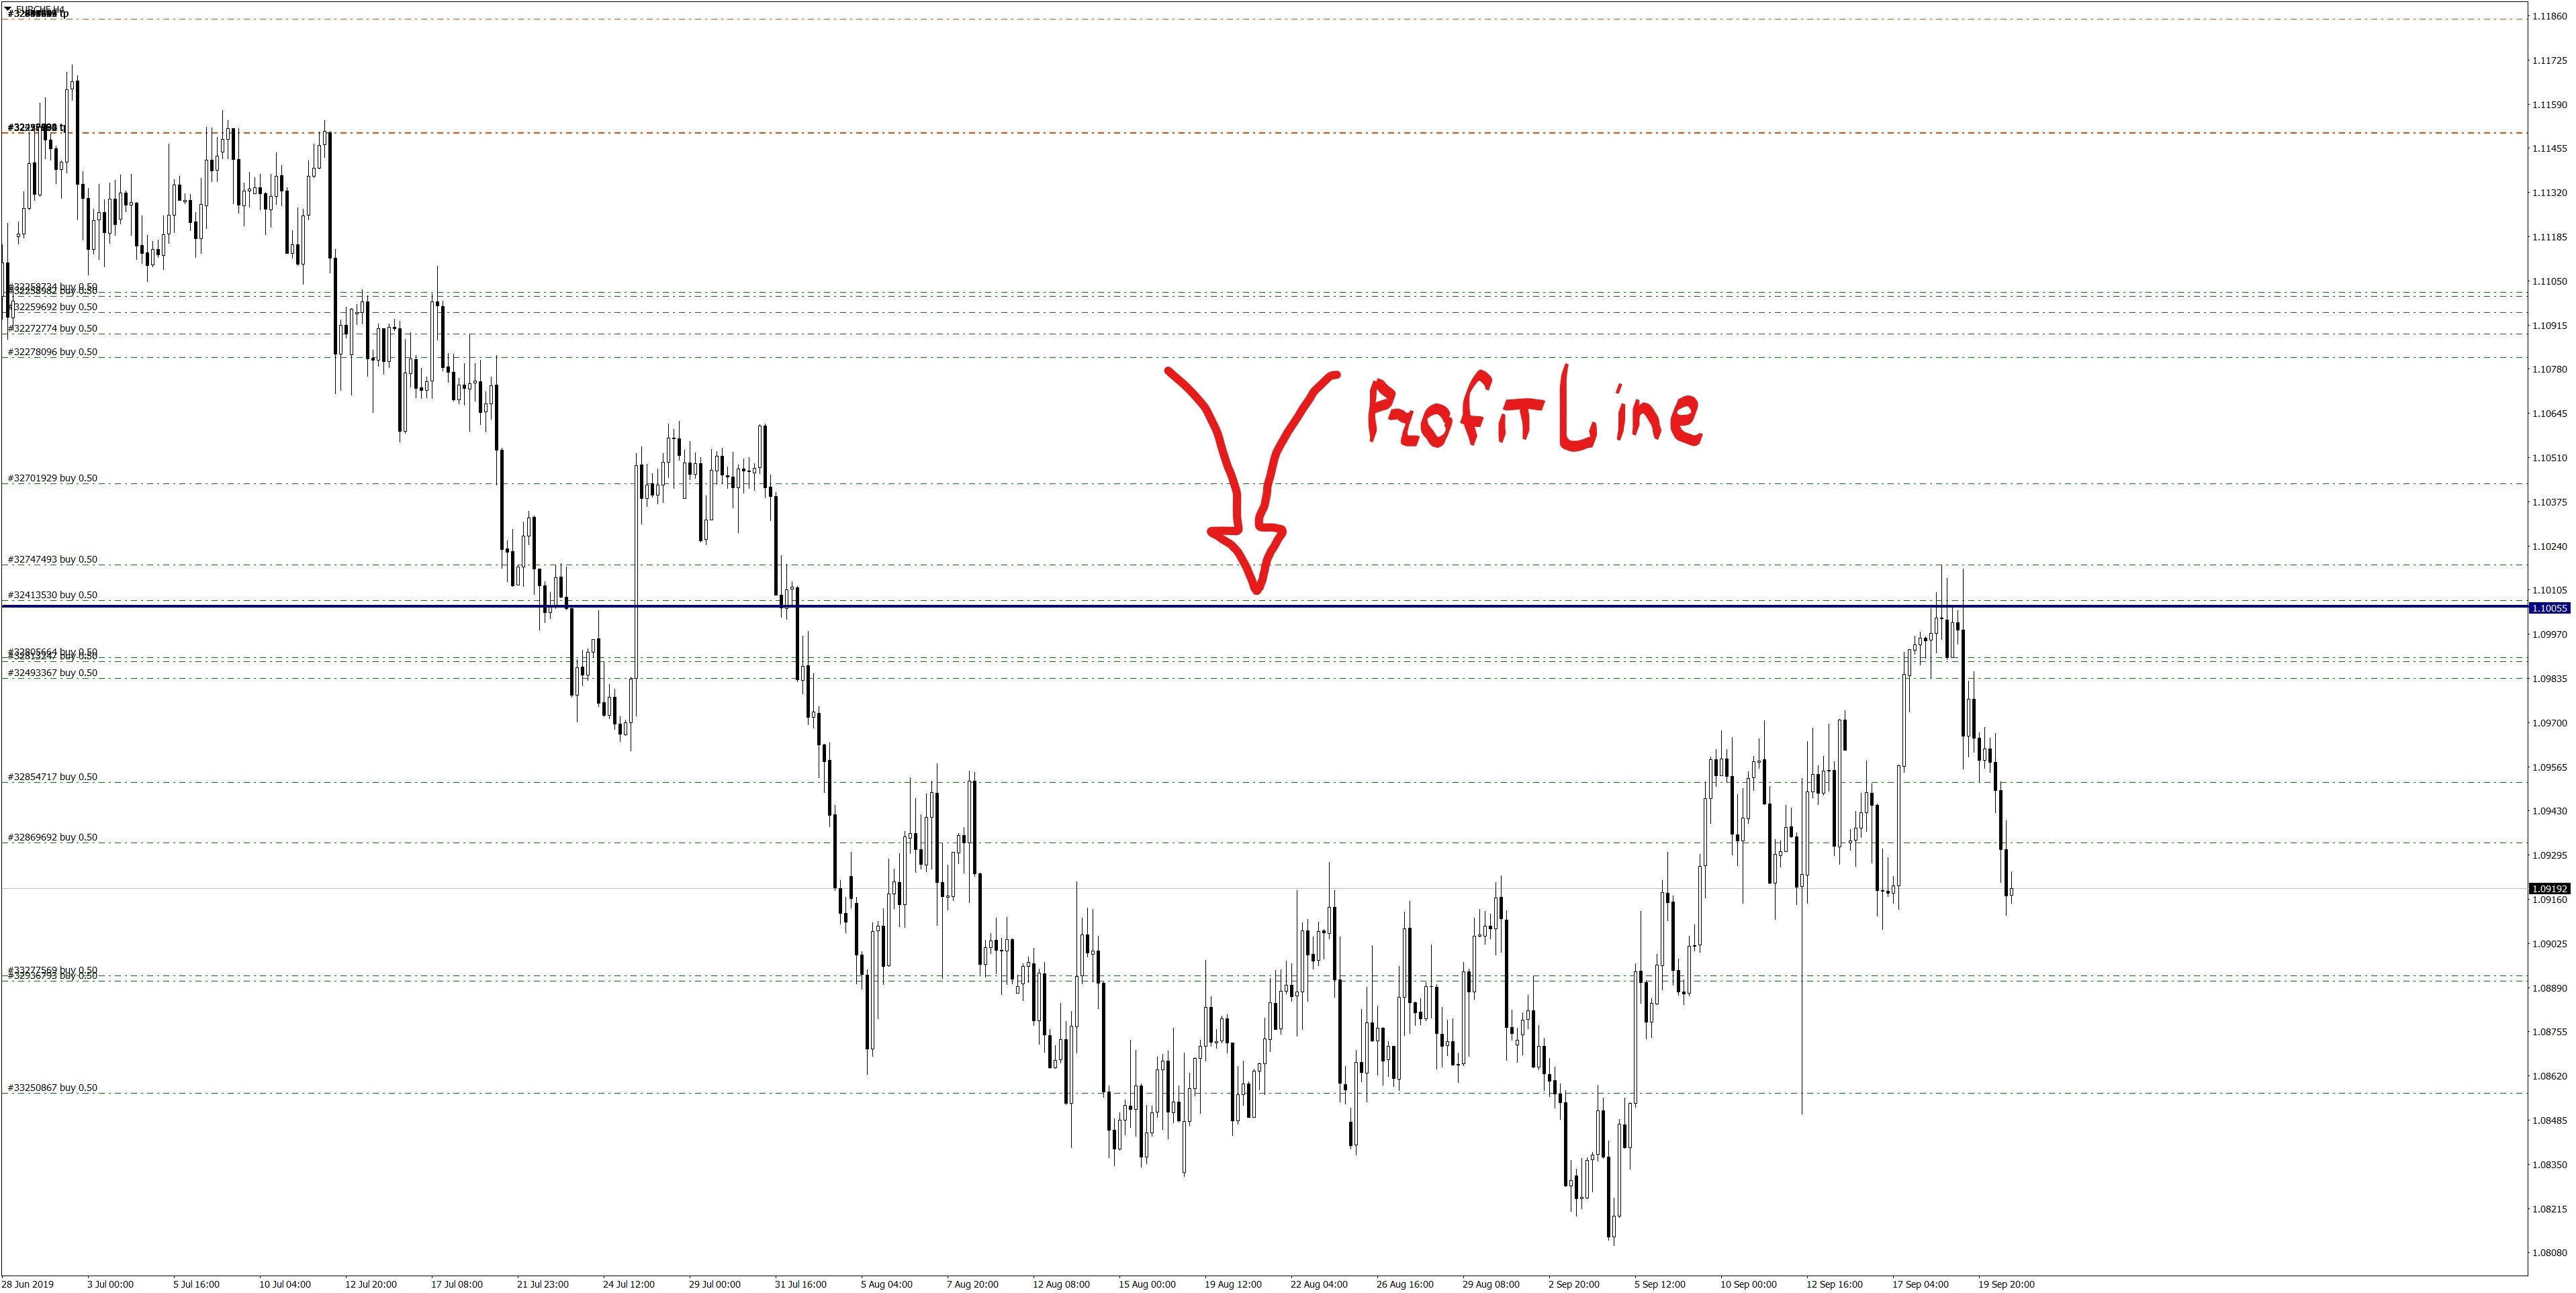 ProfitLine on EURCHF